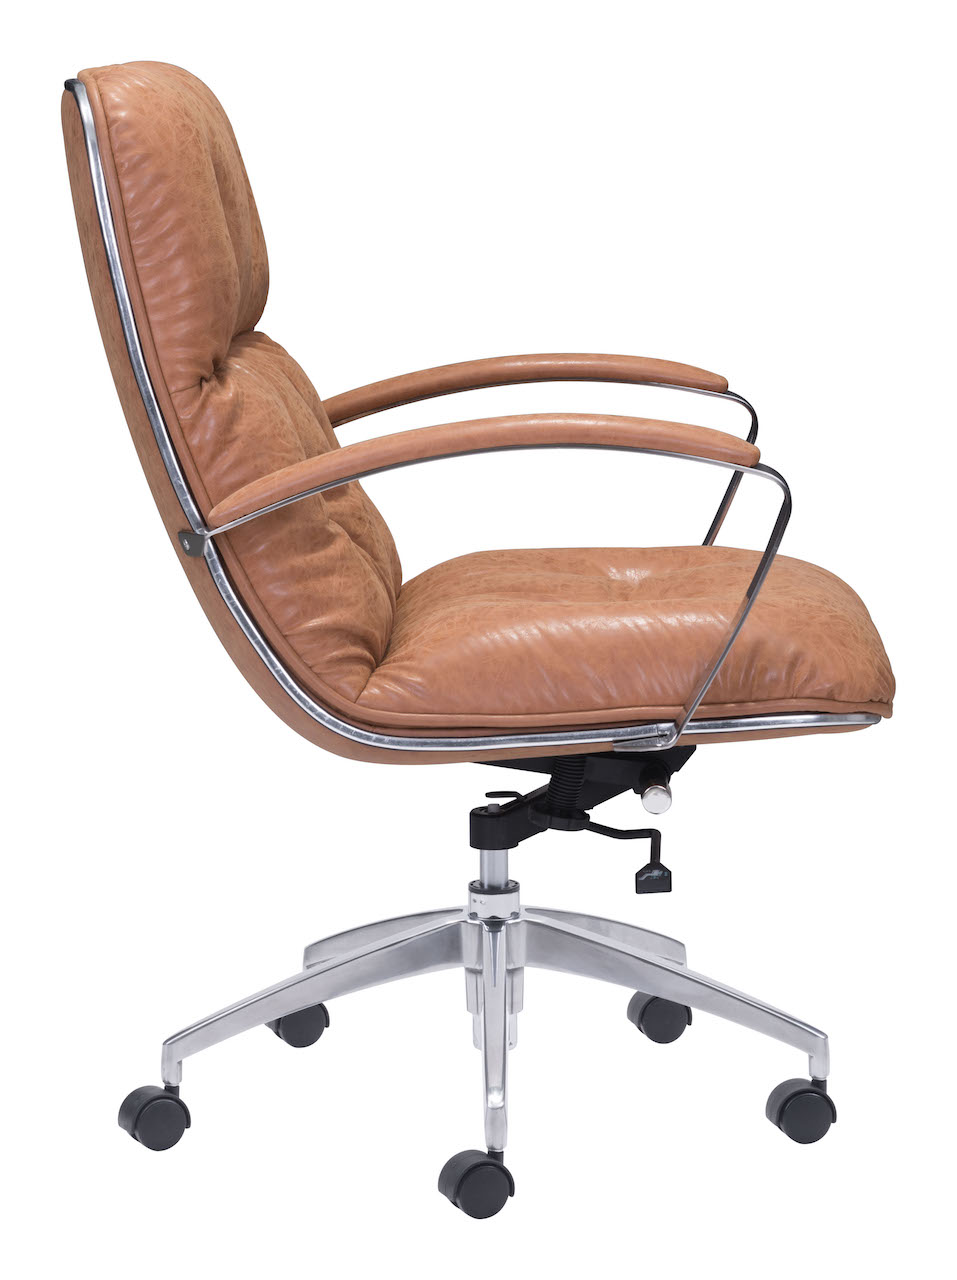 avenue-office-chair-vintage-in-coffee-zuo.jpg